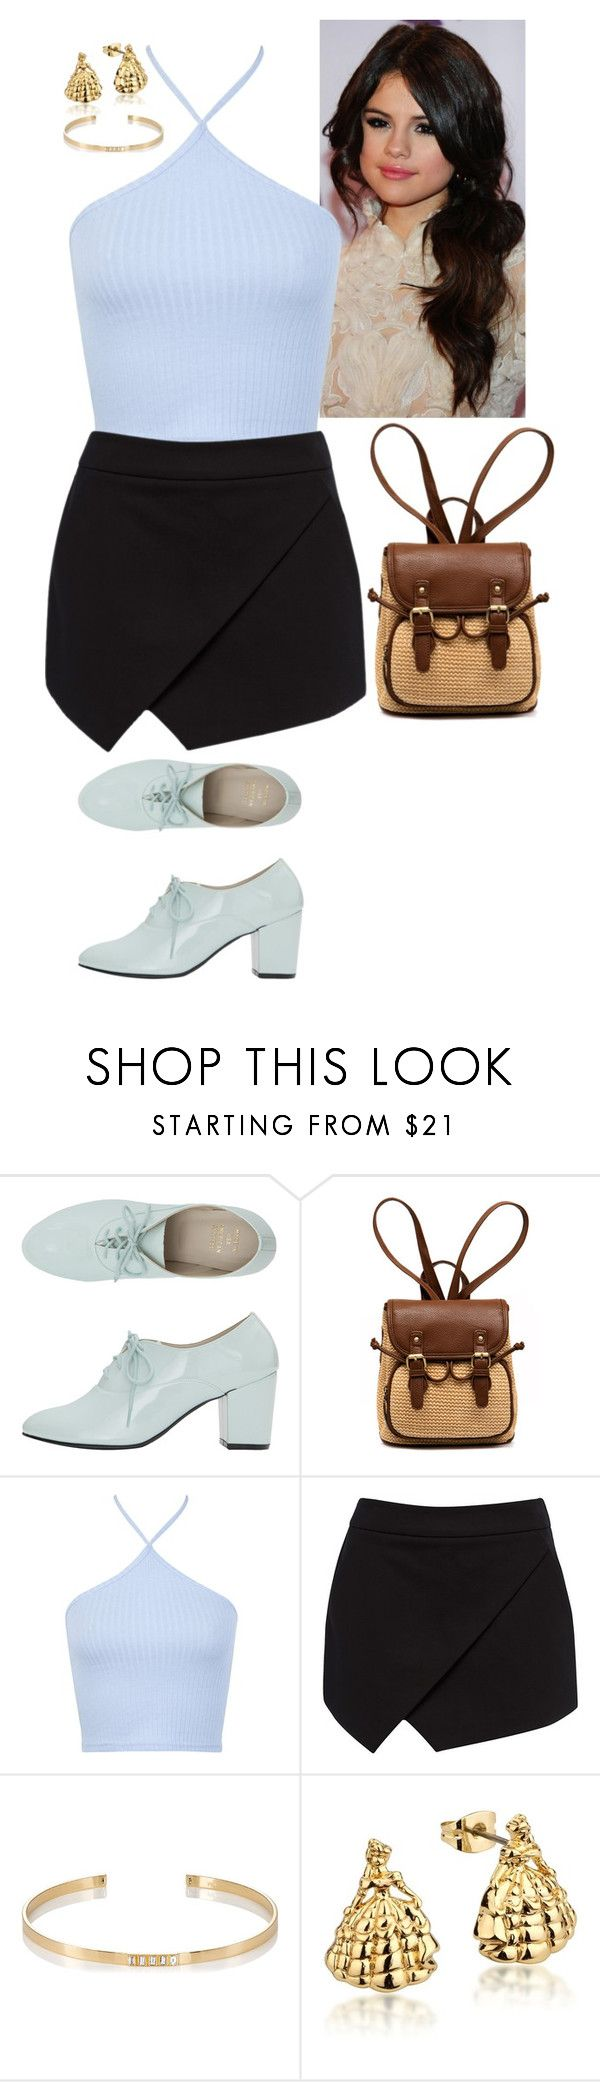 """Untitled #243"" by stinze on Polyvore featuring Retrò, Miss Selfridge, Forever New, Ileana Makri and Disney"